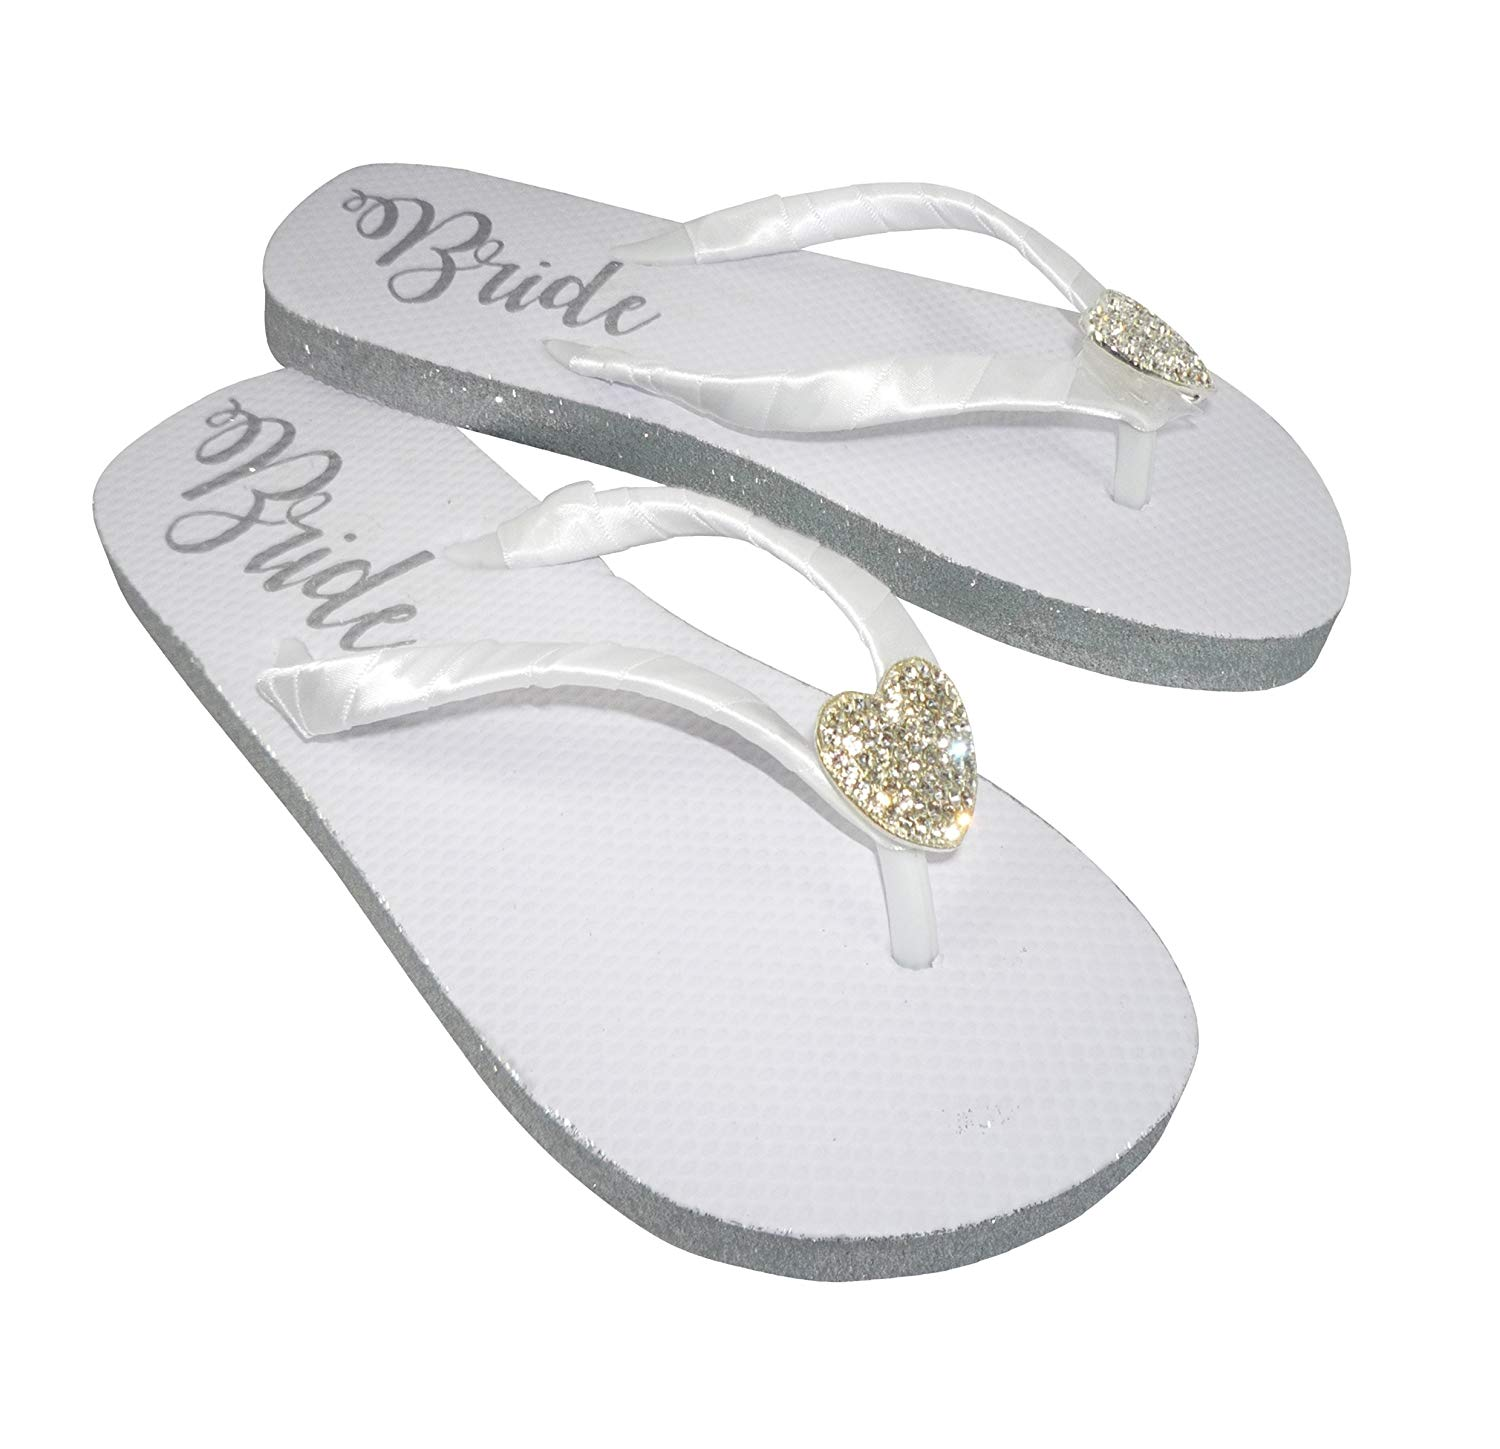 9e64fc278c32 Get Quotations · Silver Glitter Bride Sole Flip Flops with Rhinestone  Embellishment